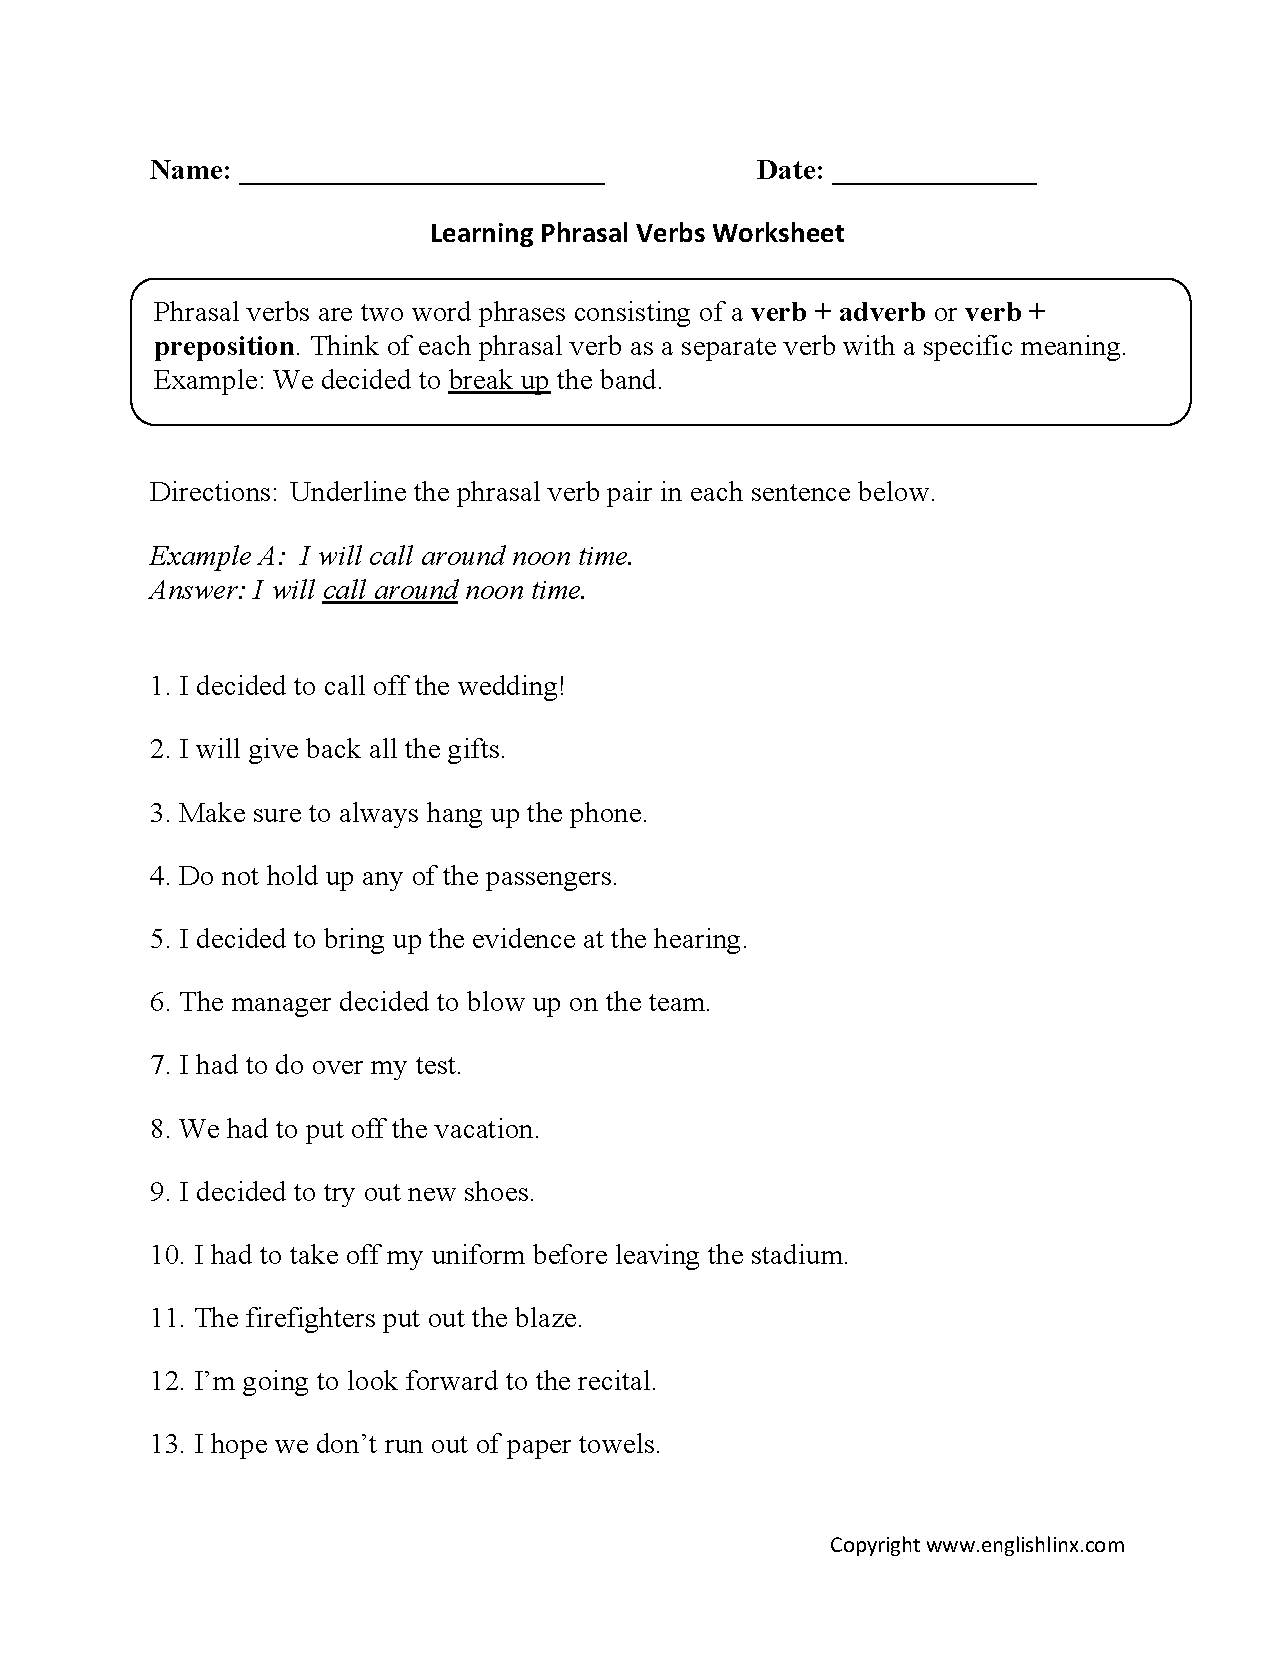 action verb worksheets worksheet workbook site englishlinx com verbs worksheets